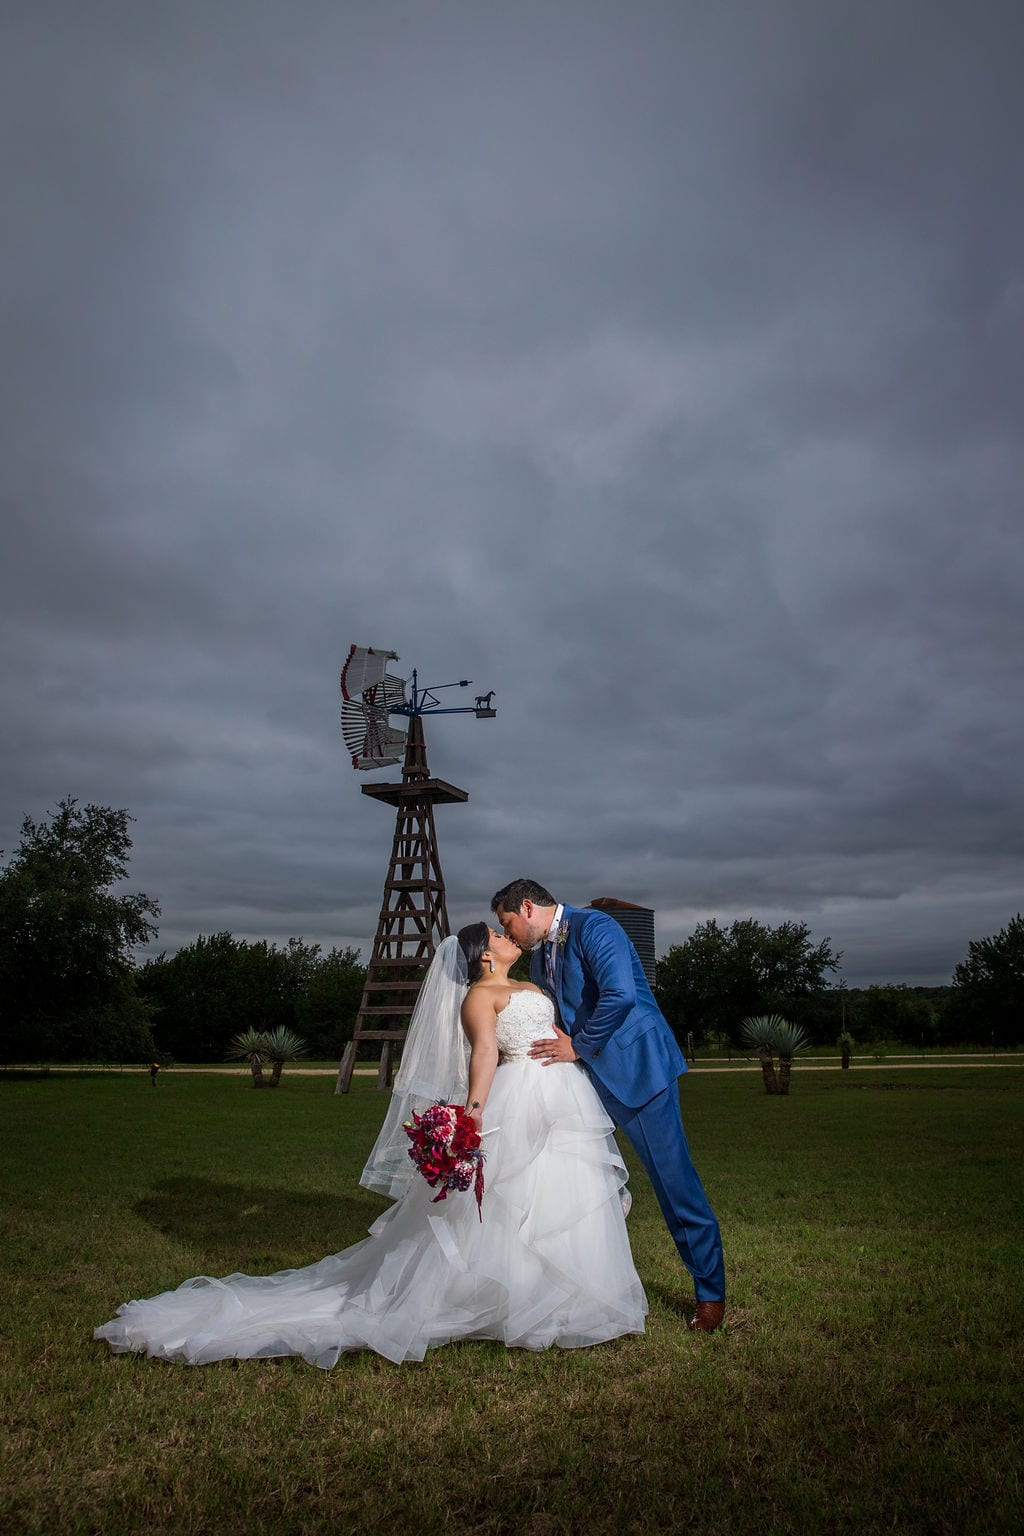 Laura wedding Western Sky couple kiss windmill